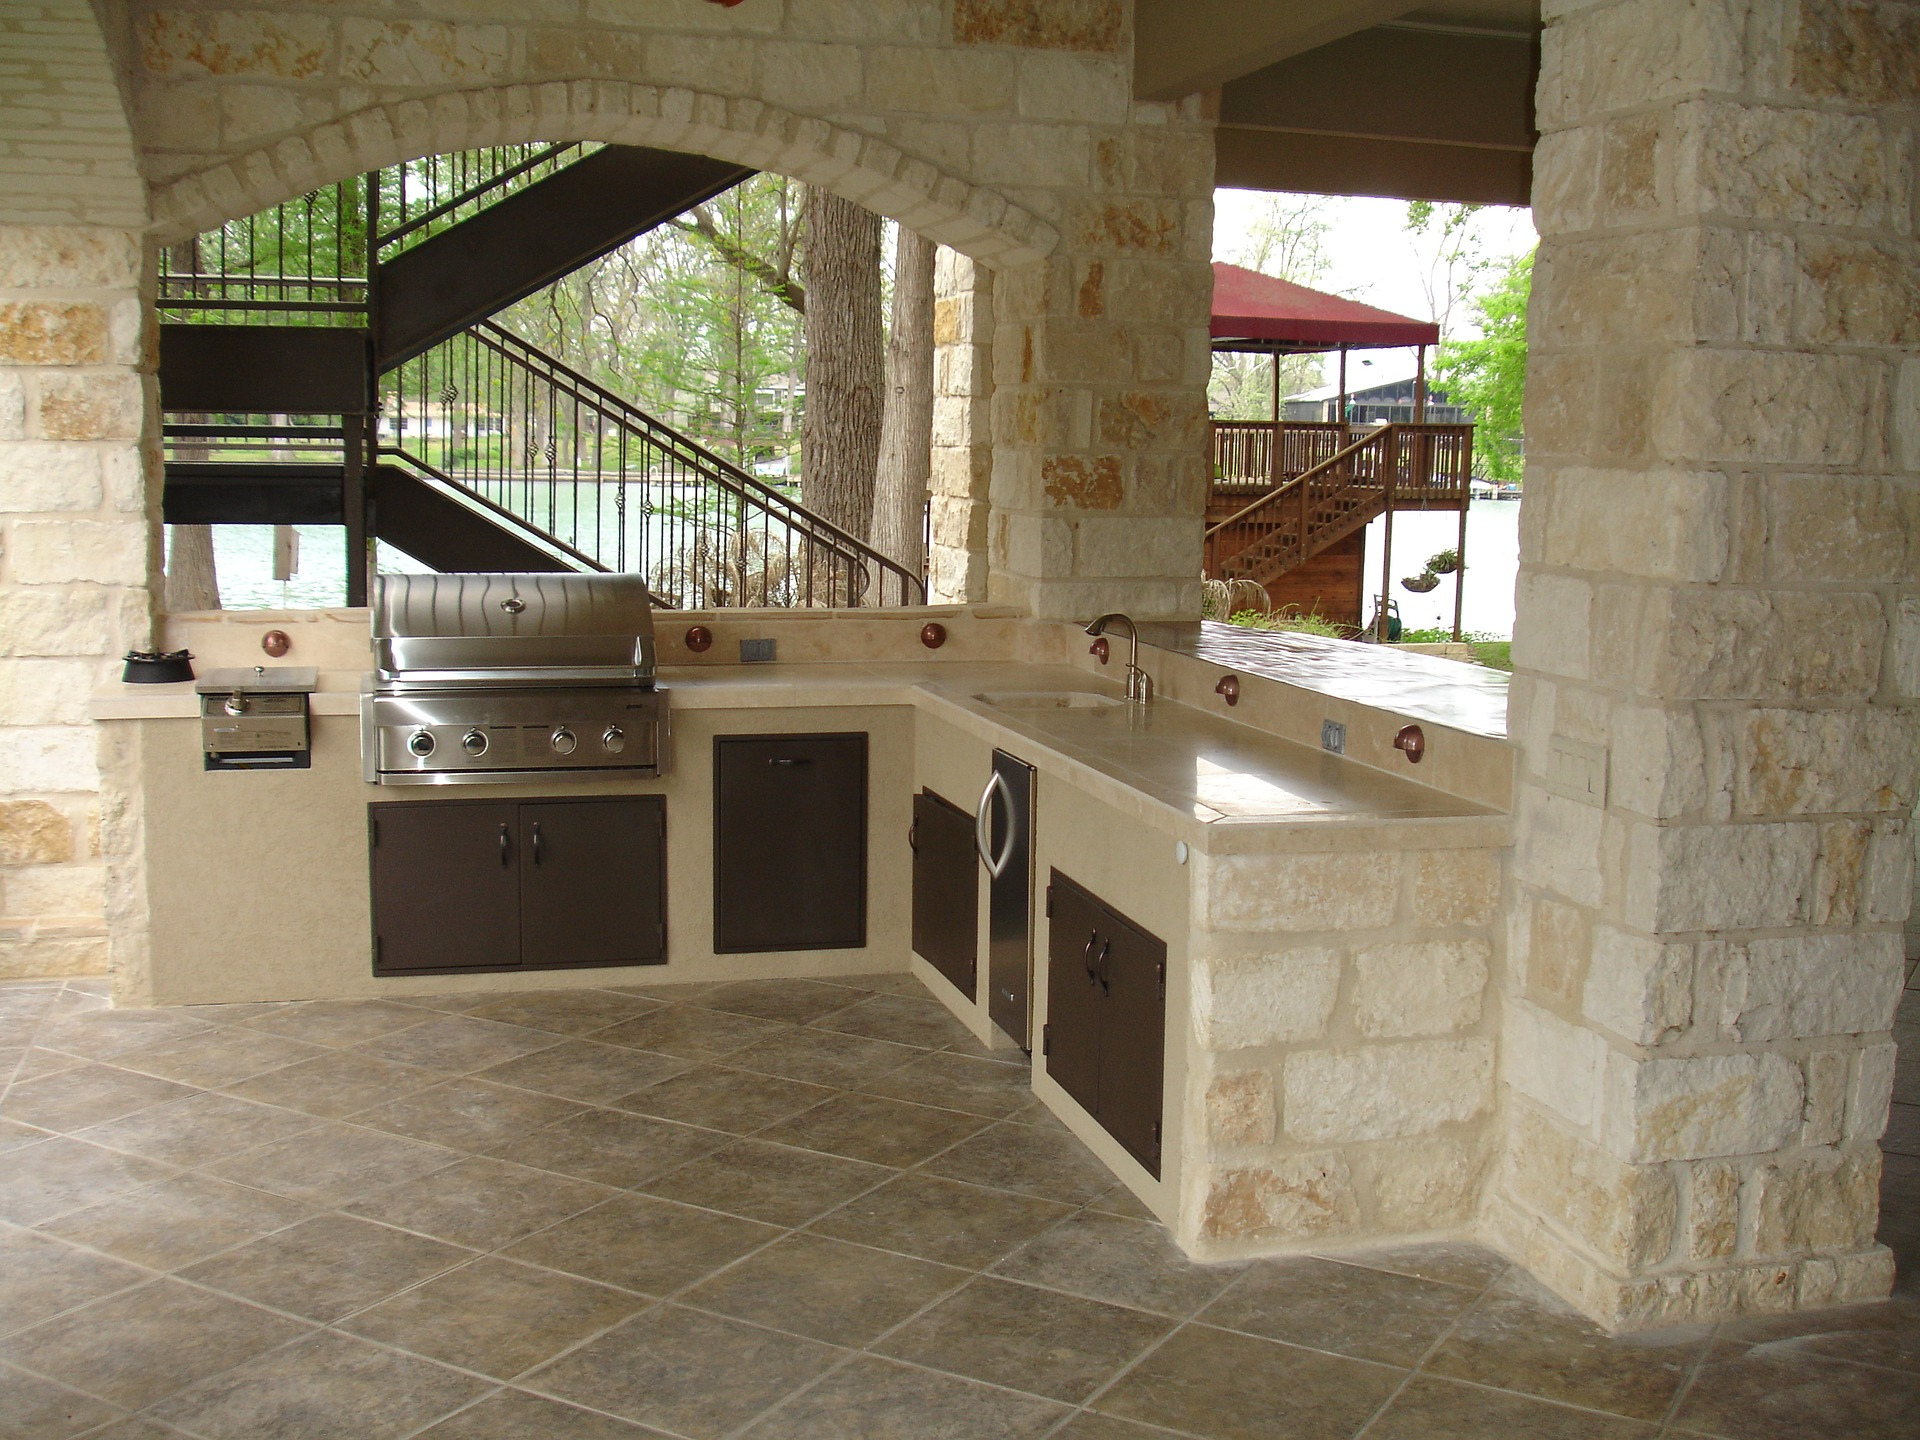 outdoor-kitchen-1537768_1920